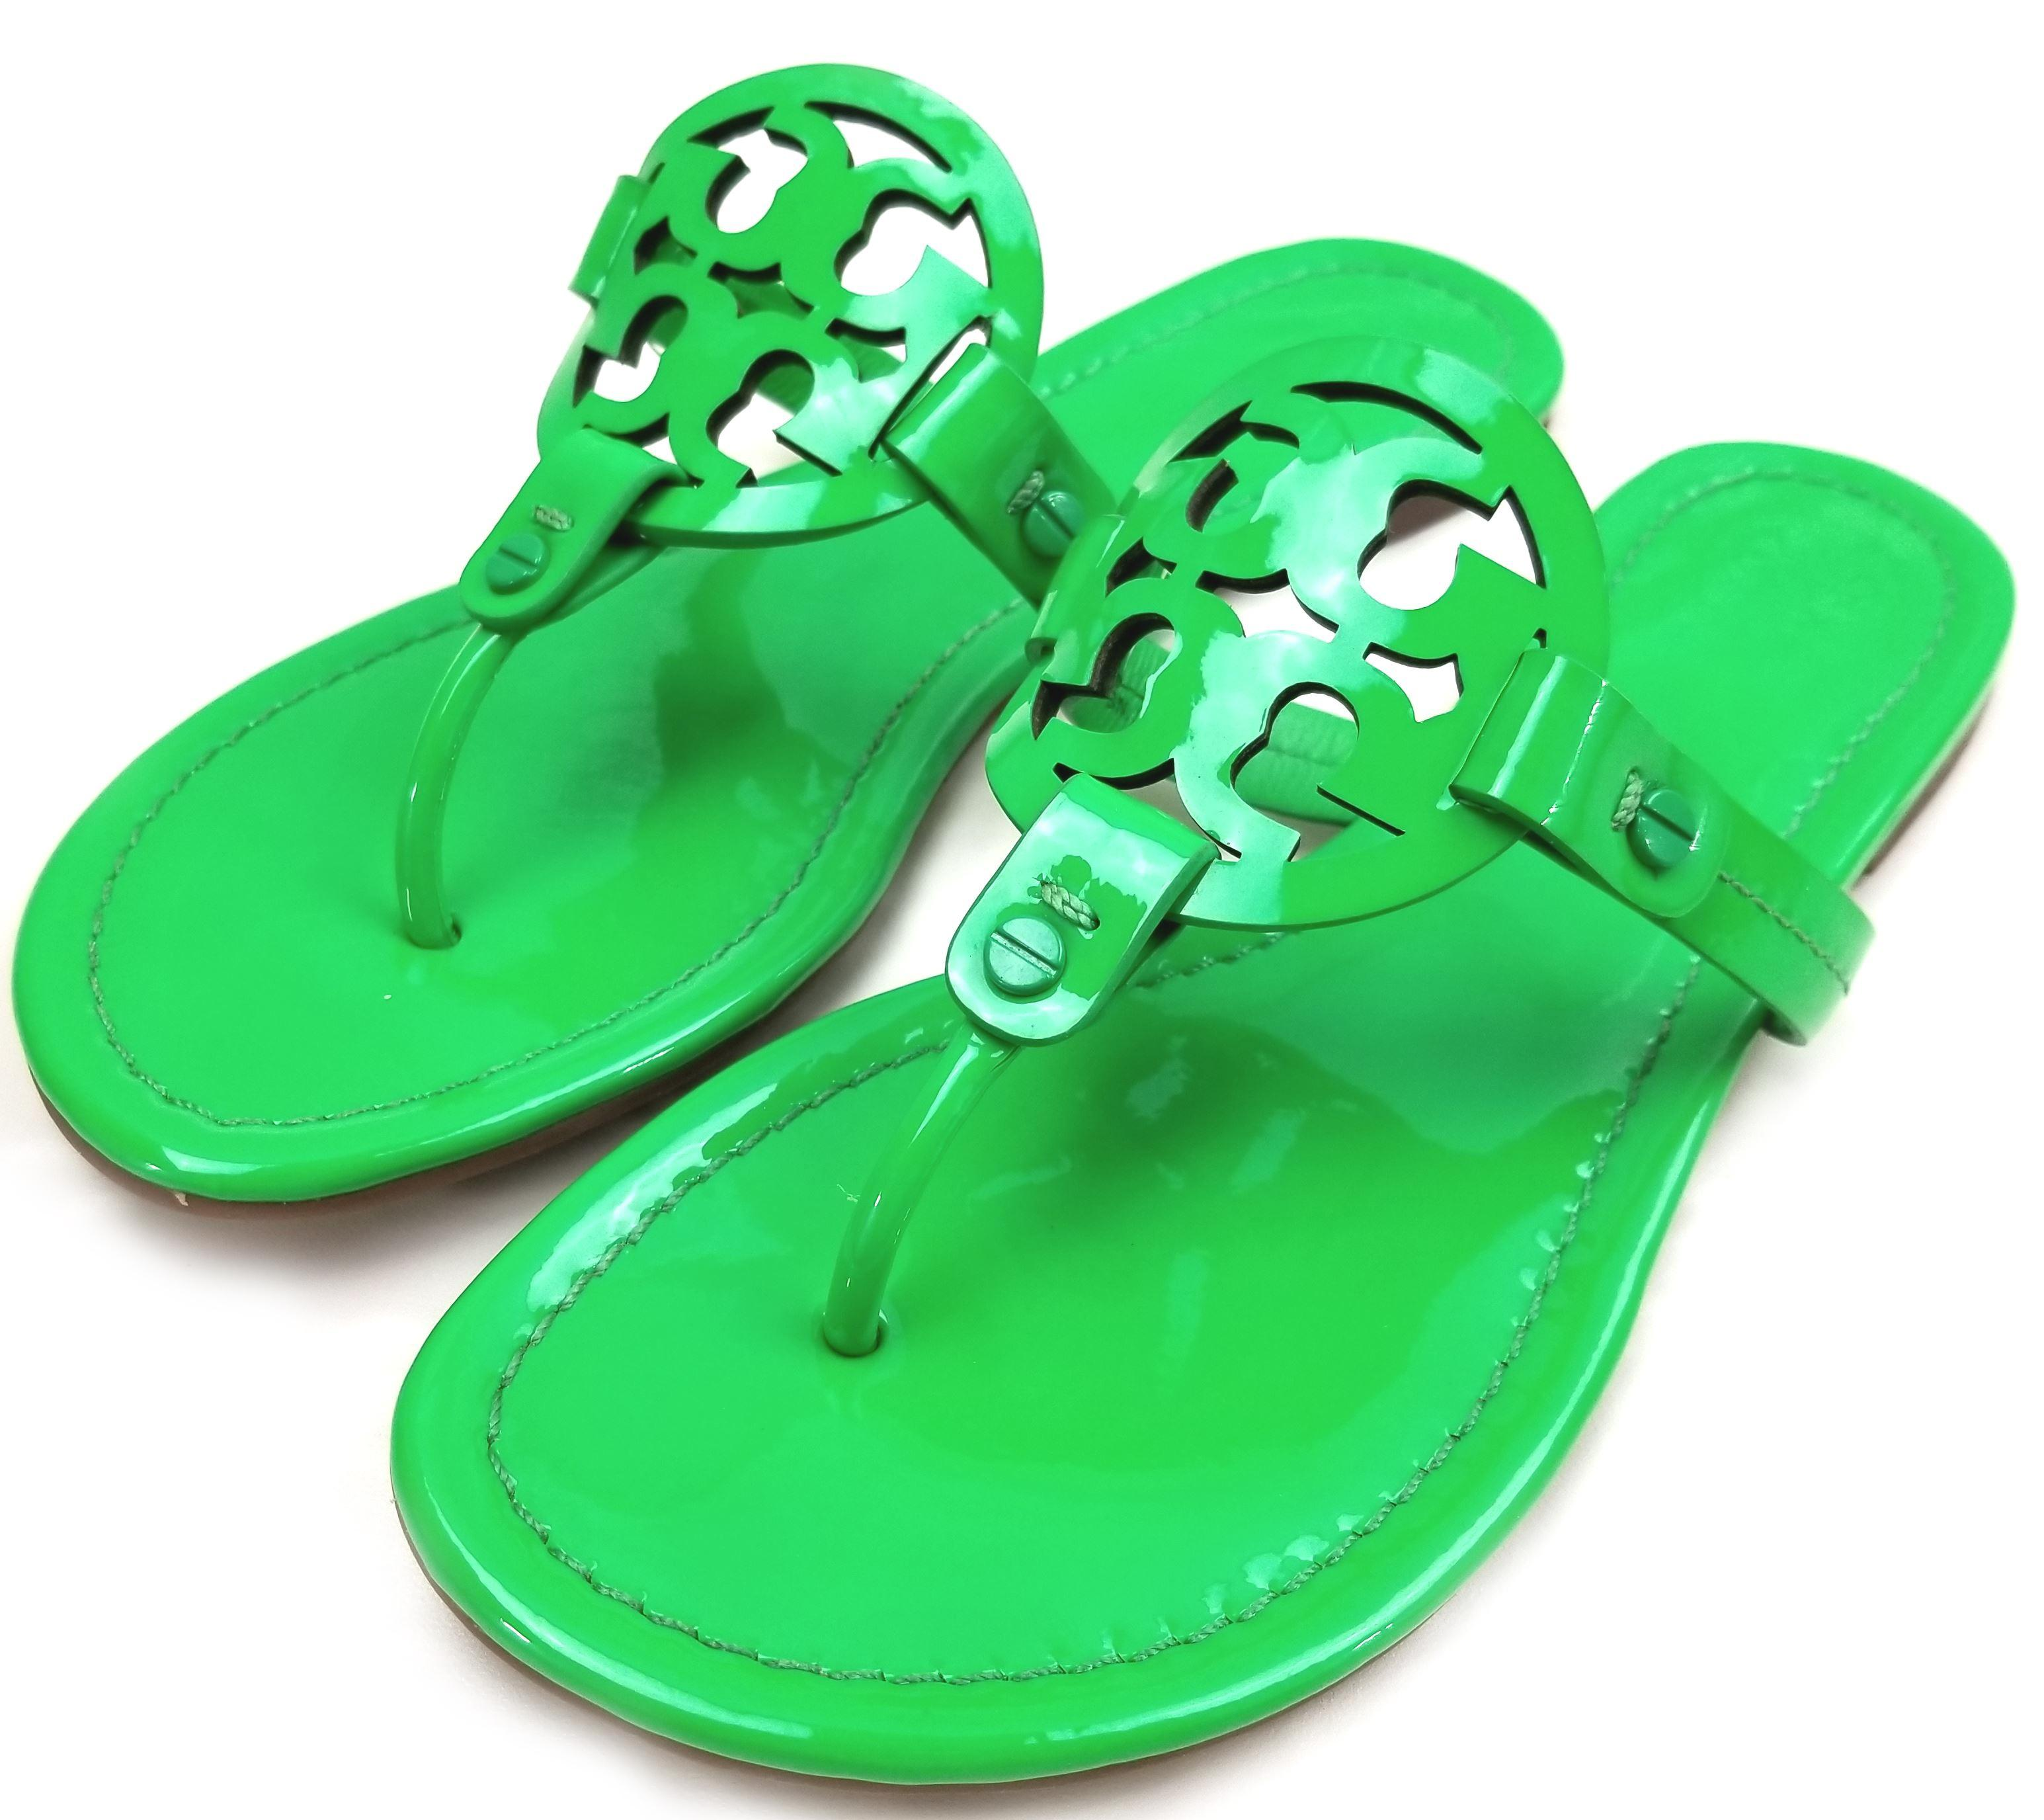 8a3ab54c1 ... B Tory Burch Green Patent Miller Sandals Size Size Size US 8.5 Regular ( M